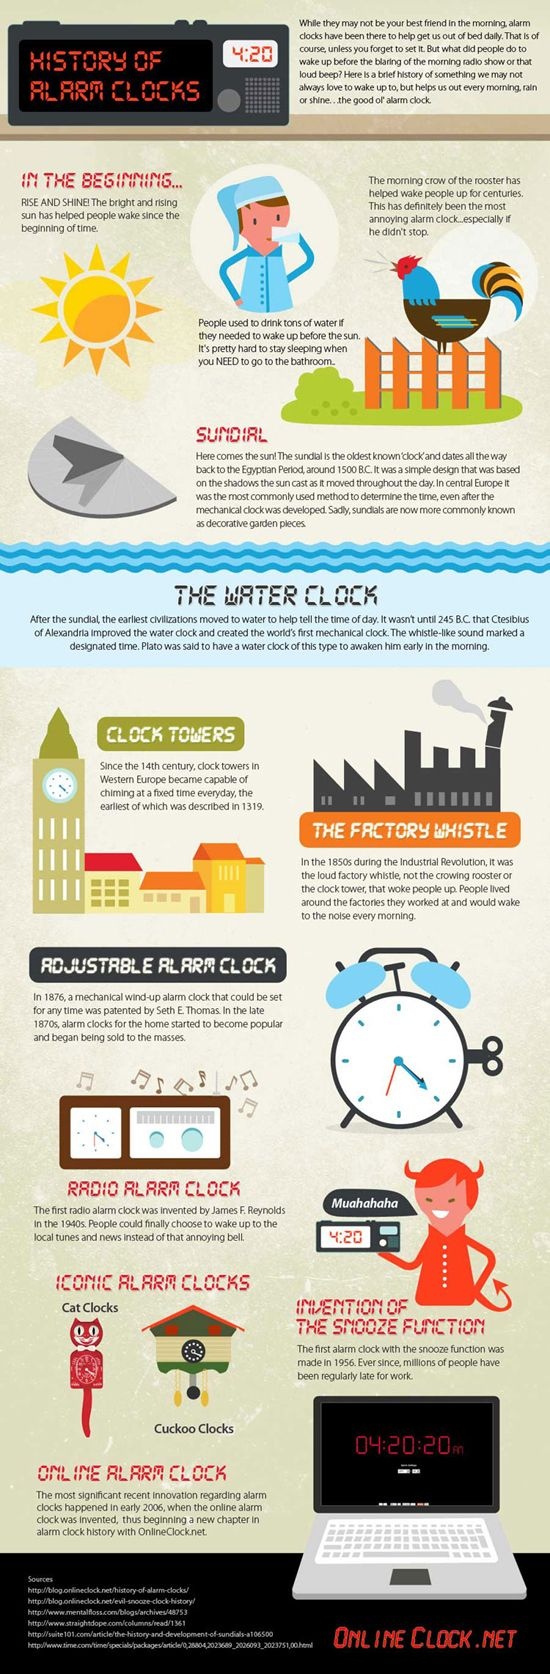 A Look At The History of The Alarm Clock Infographic: Clocks Infografía, Website, Data Visual, Alarm Clocksinfograph, Clever Infographic, Internet Site, Clocks Infographic, Infographic Design, Awesome Infographic